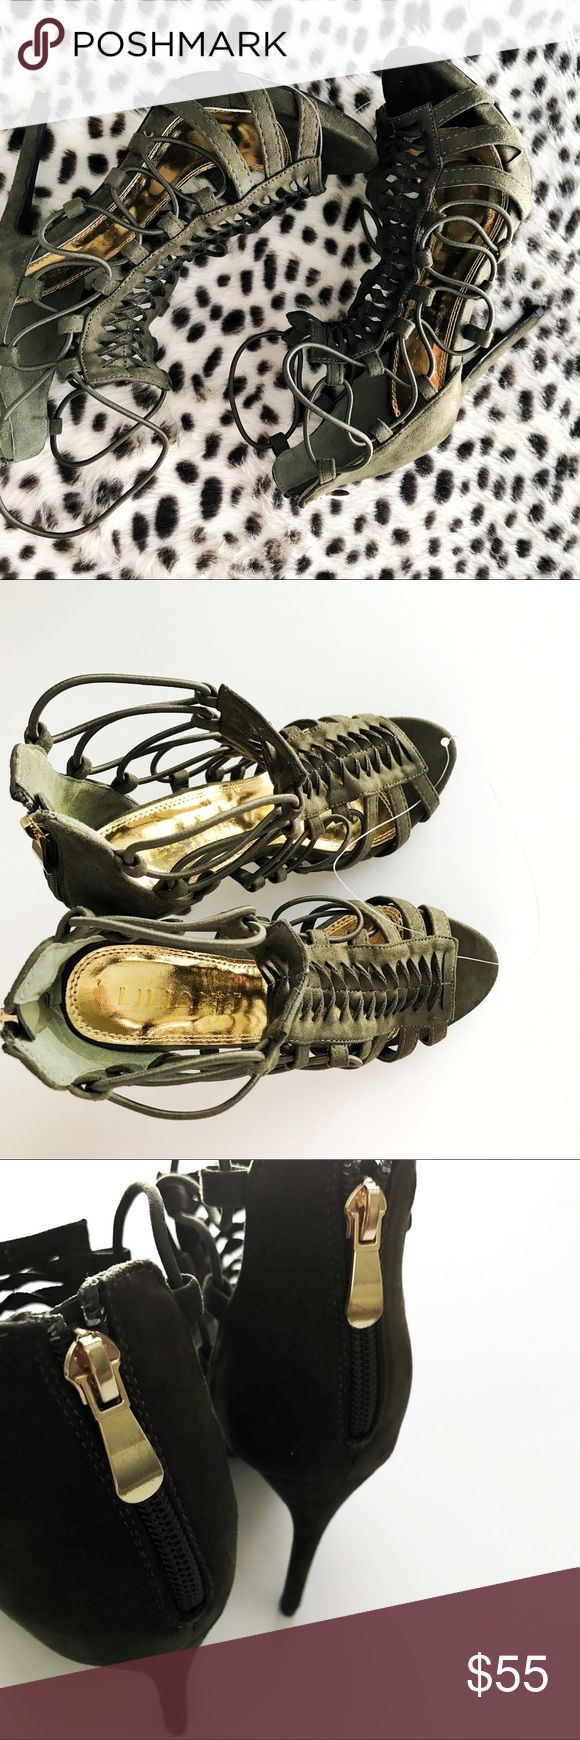 Olive green strap lace up sandal heels No trades Shoes Heels